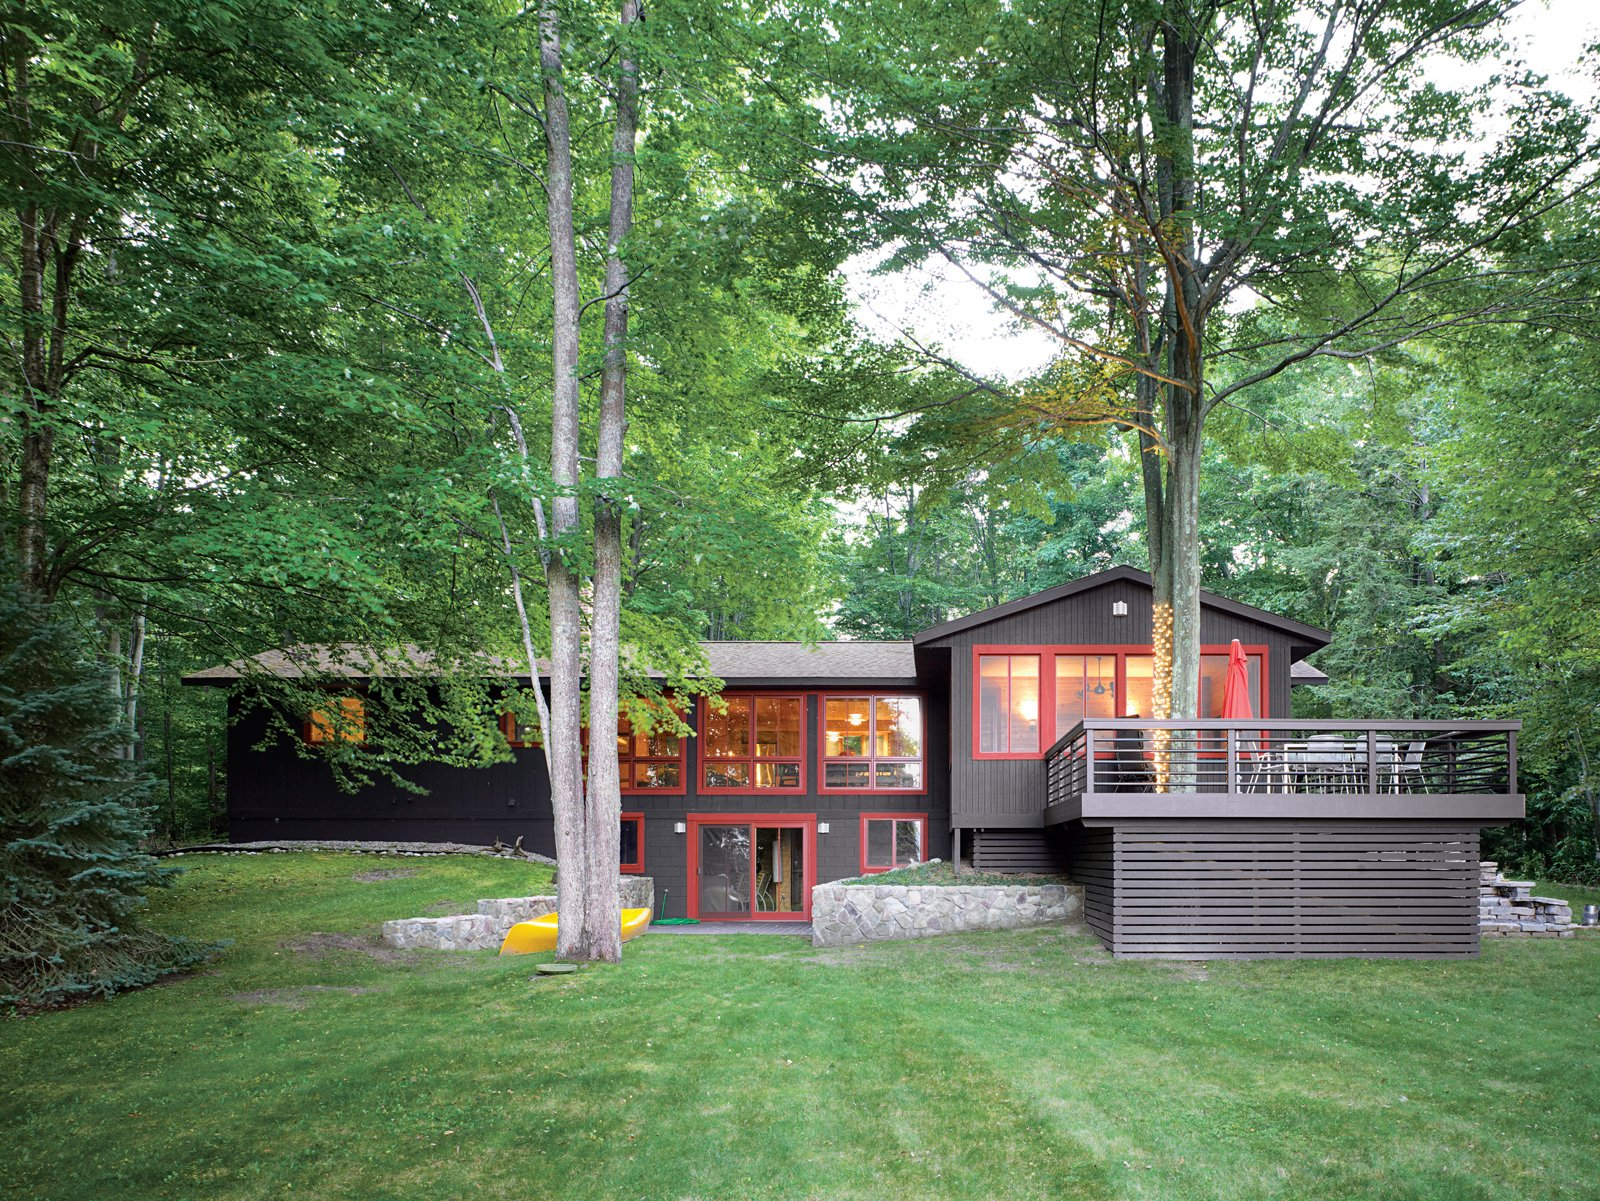 The rise of the front lawn and the height of the trees give the house a subtle presence amid magnificent surroundings.  Photo 9 of 12 in Campbells' Coup